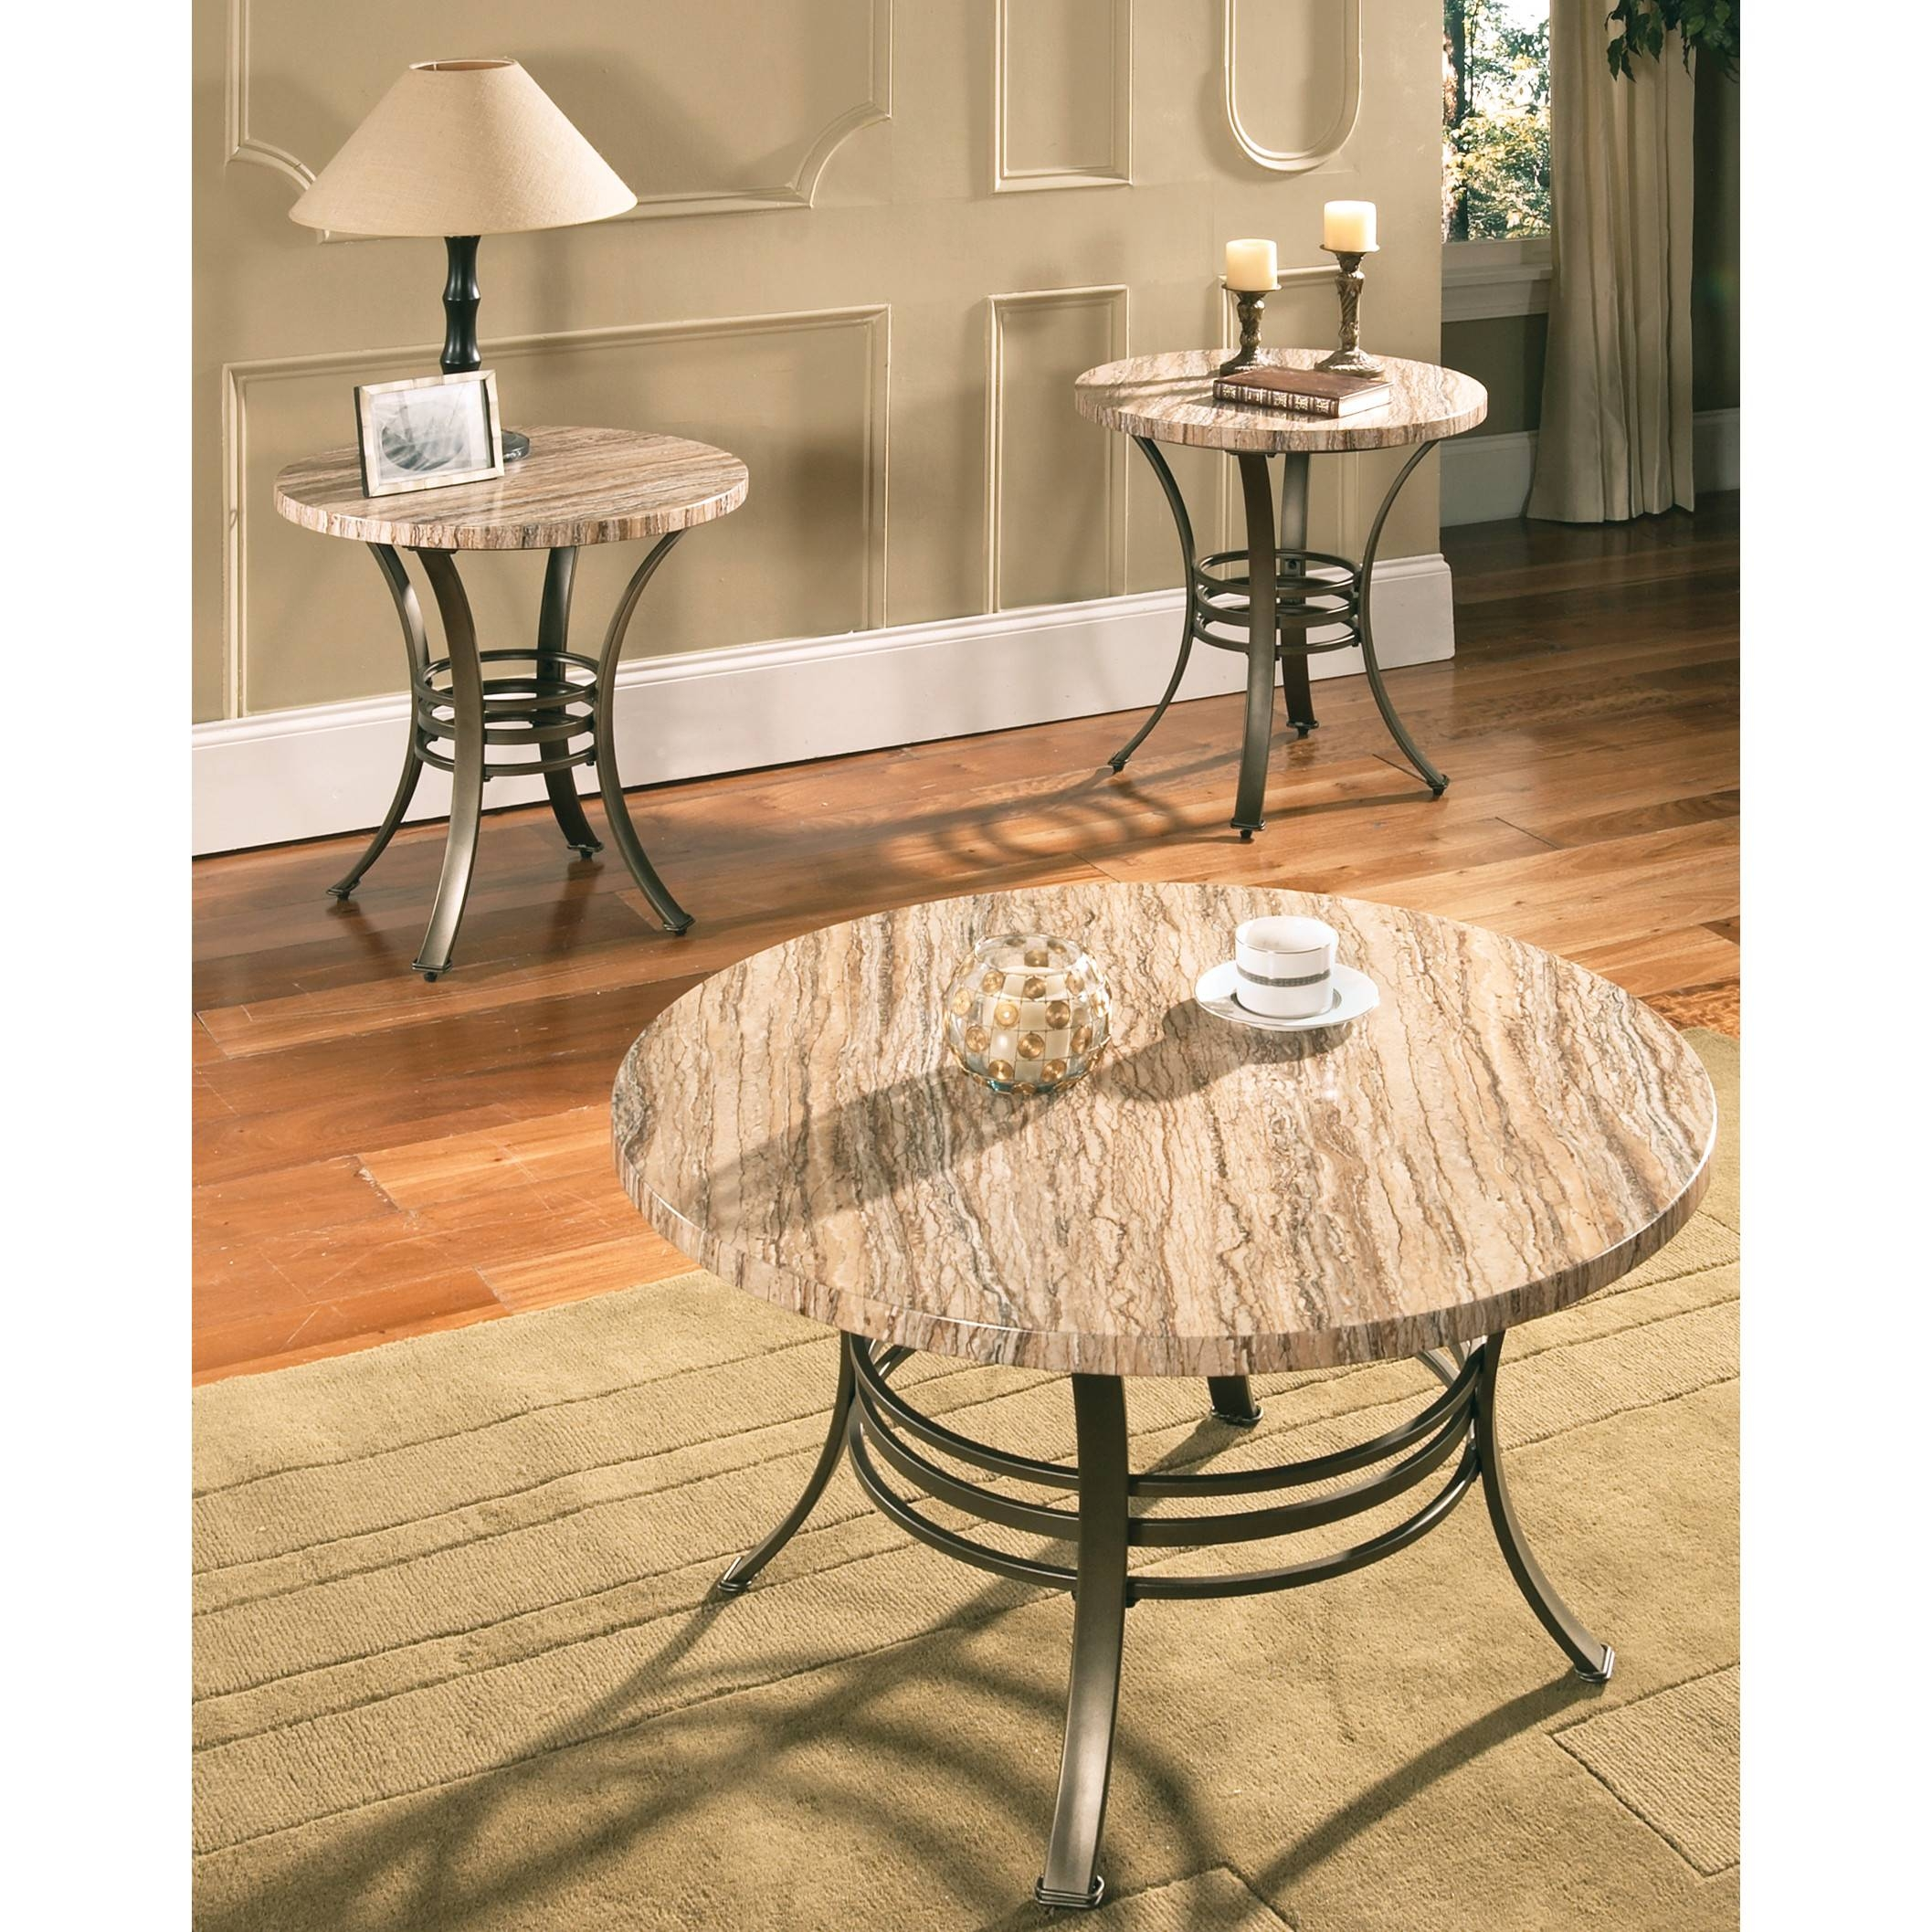 Steve Silver Furniture Tribecca Coffee Table Set Reviews Wayfair intended for Wayfair Coffee Table Sets (Image 29 of 30)